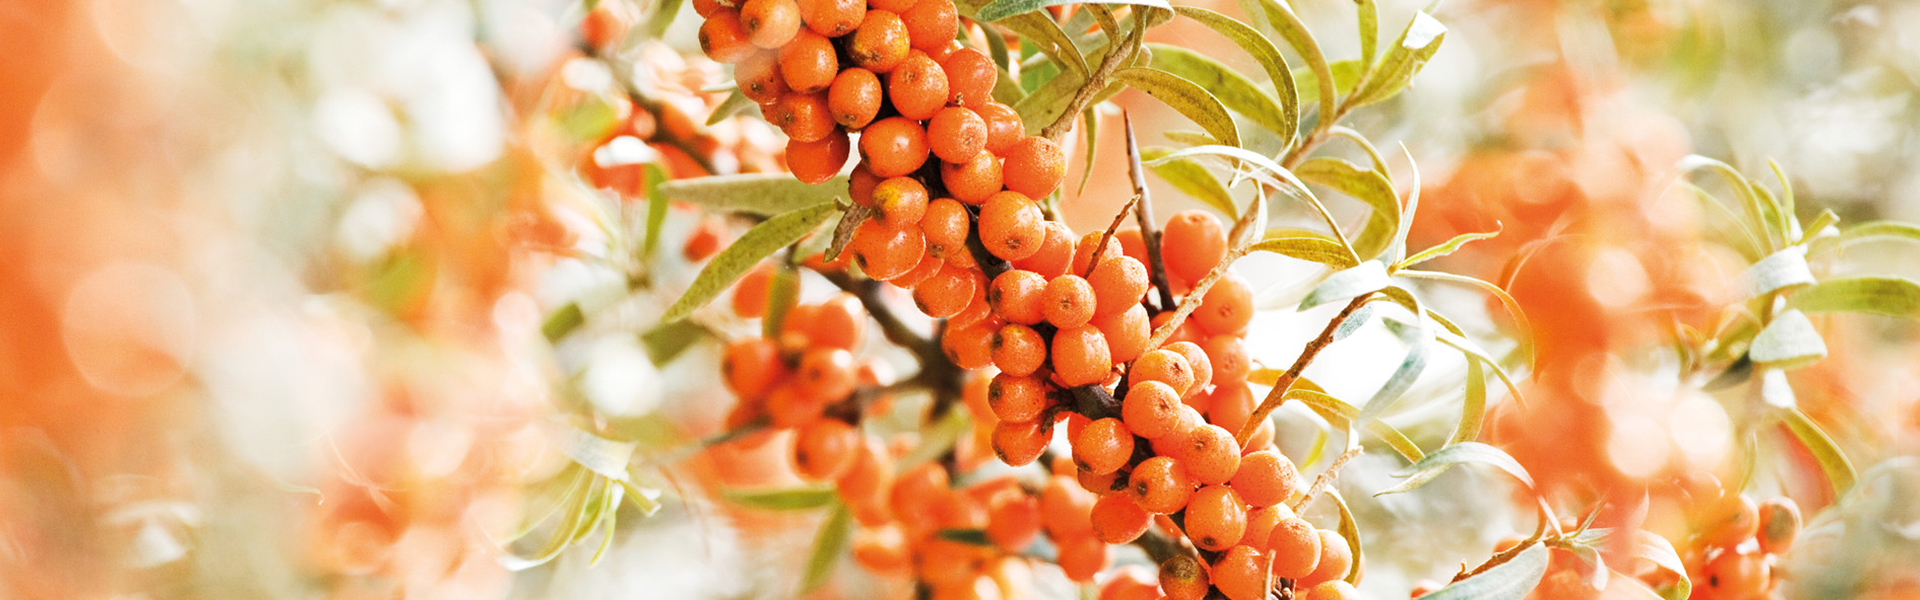 sea-buckthorn-lead-plant